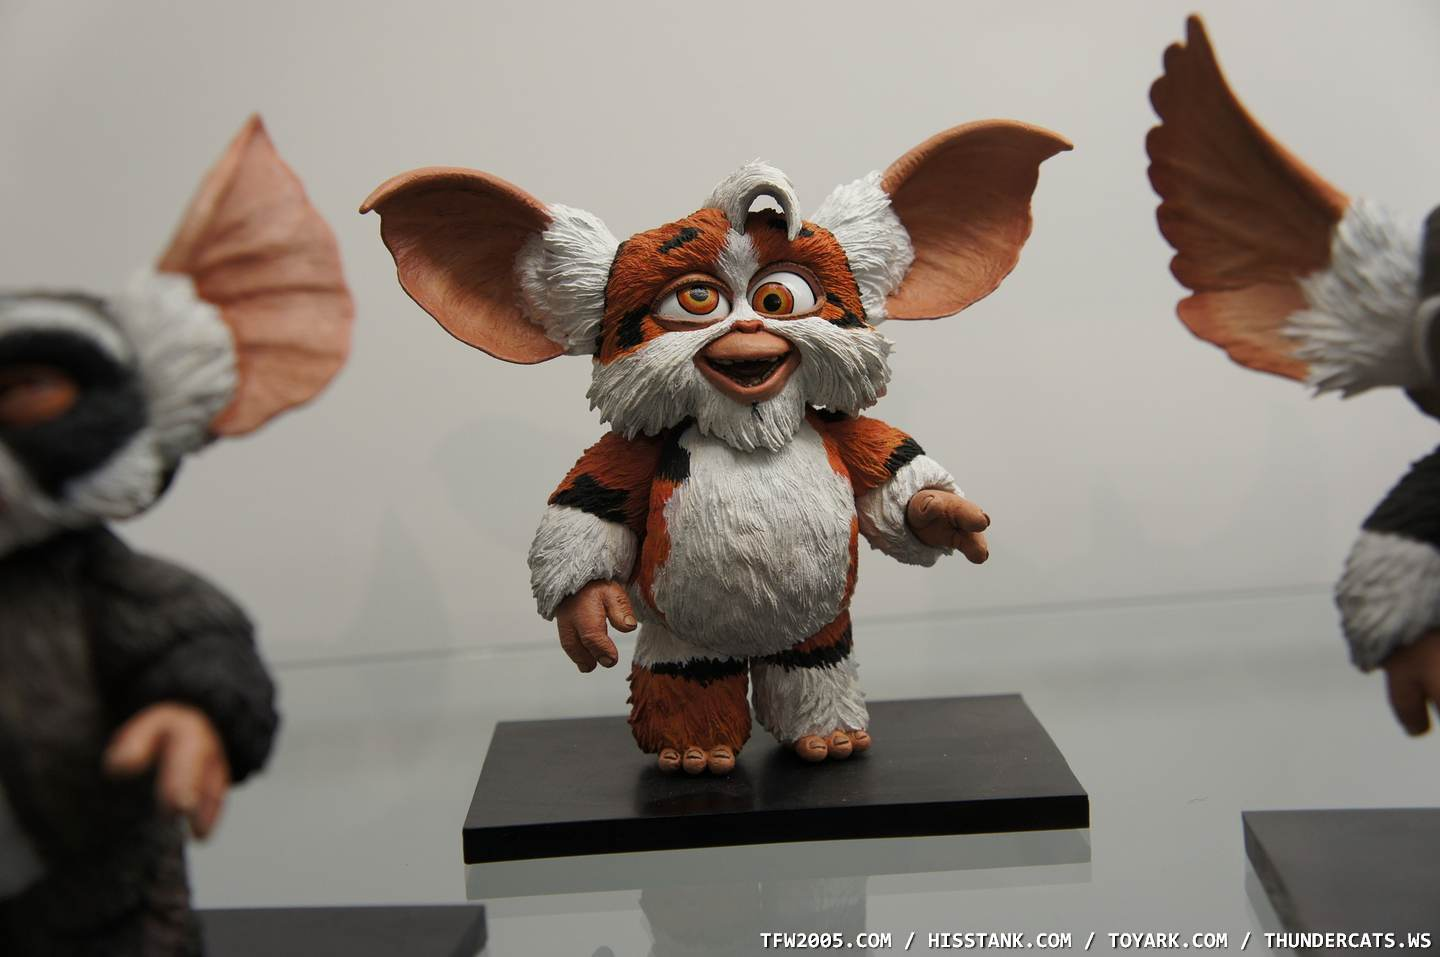 Official NECA Gremlins thread [Archive] - Sideshow Freaks